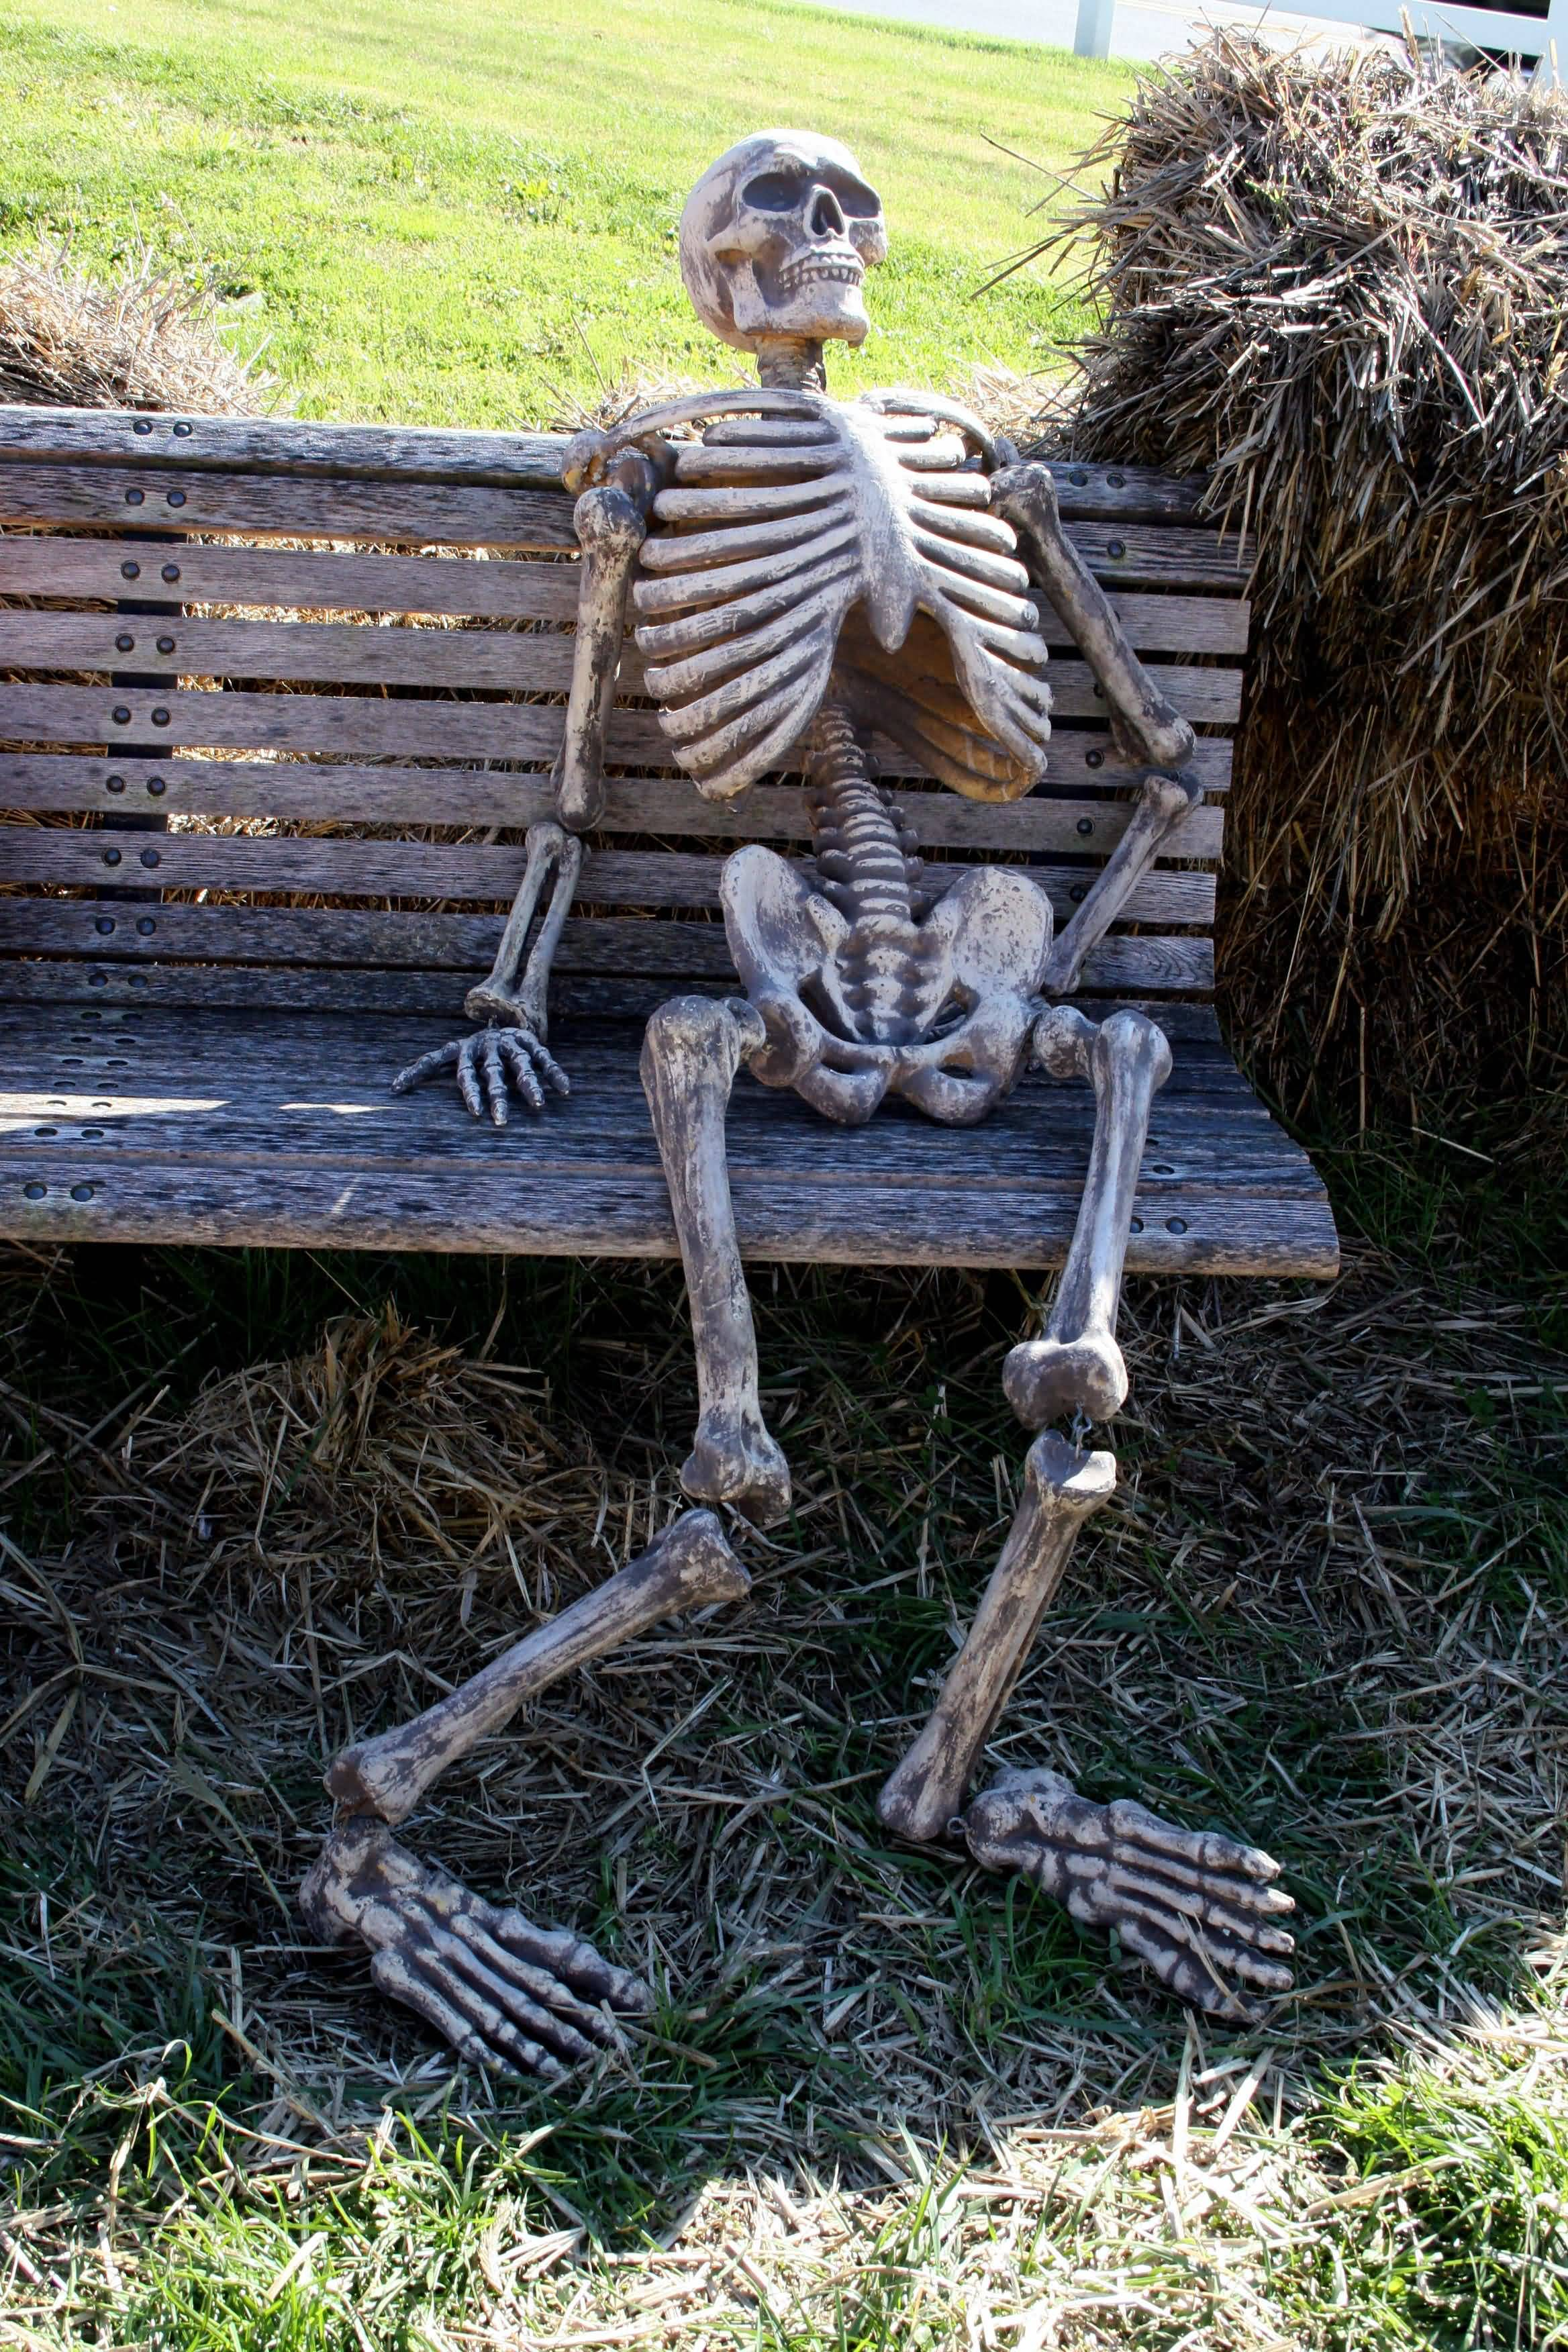 Waiting Skeleton Meme Funny Image Photo Joke 12